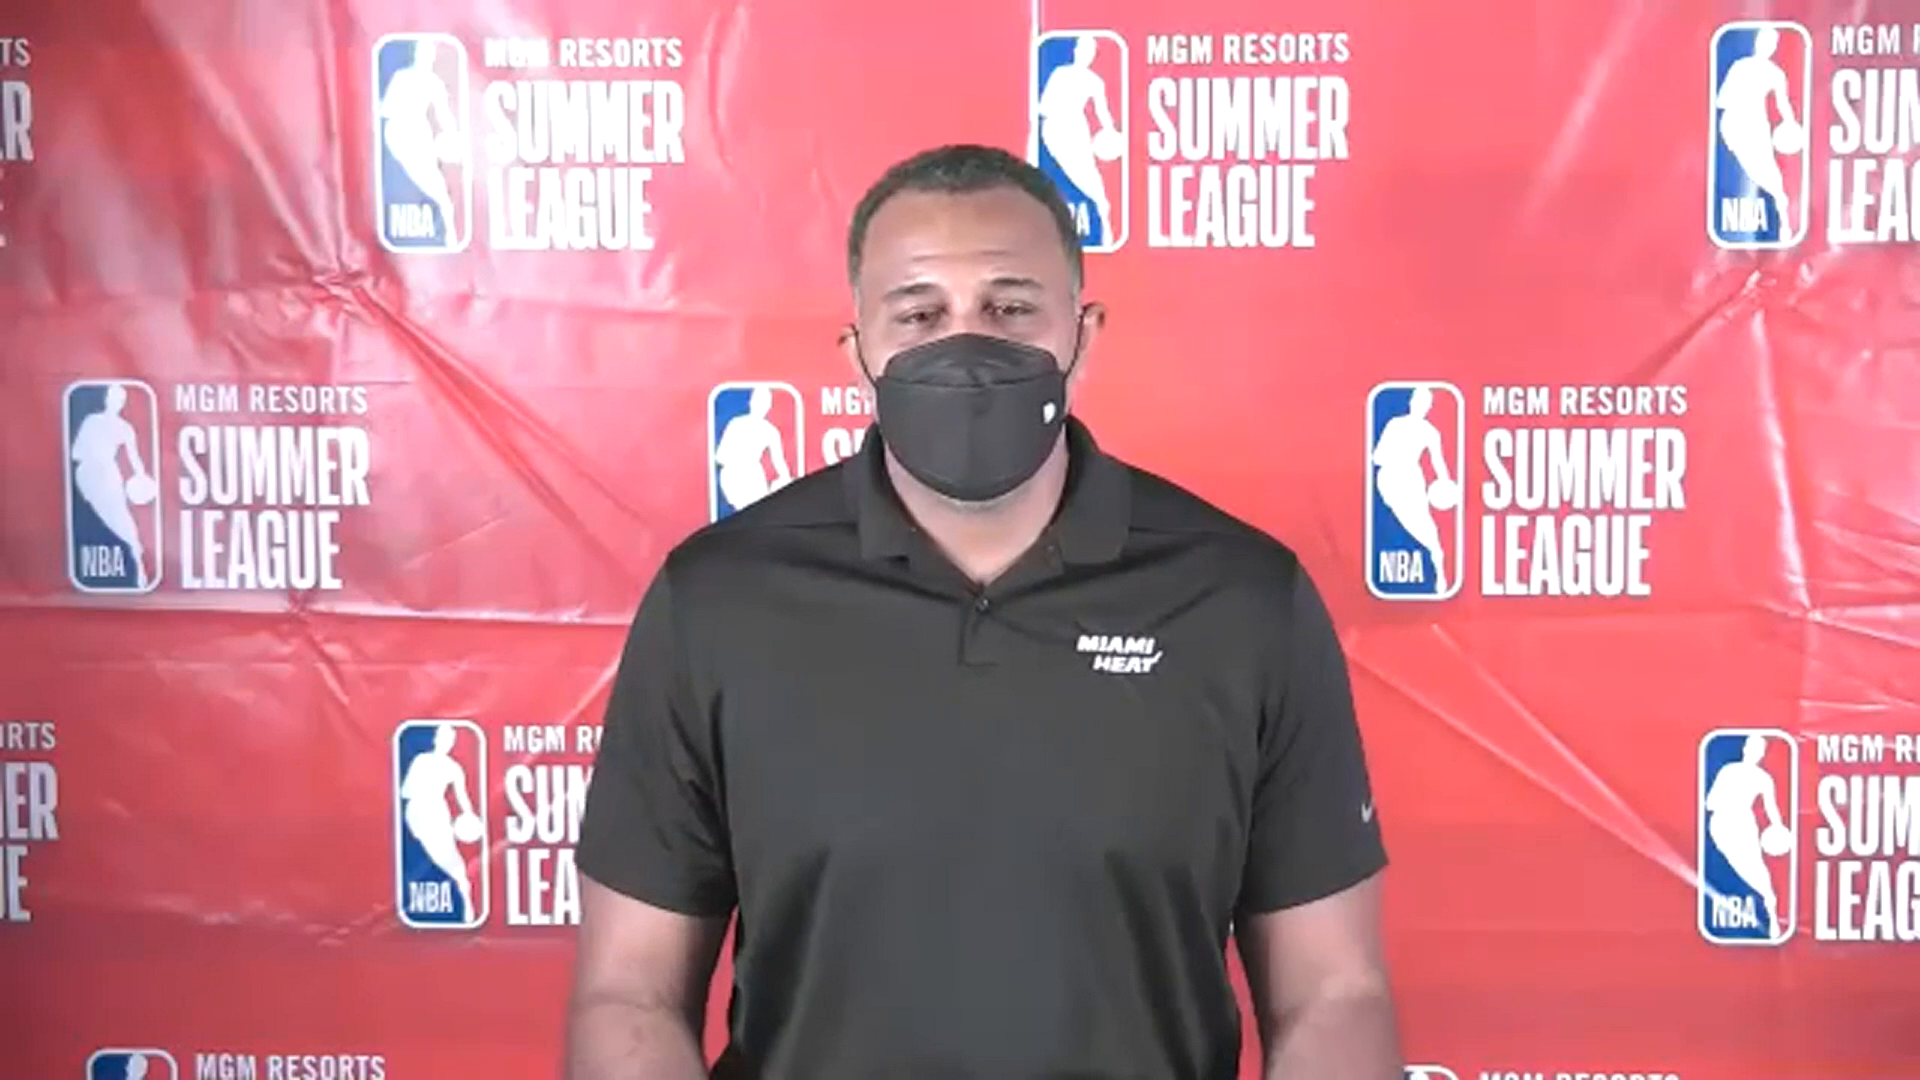 Coach Allen On The Team's Undefeated Start To Summer League